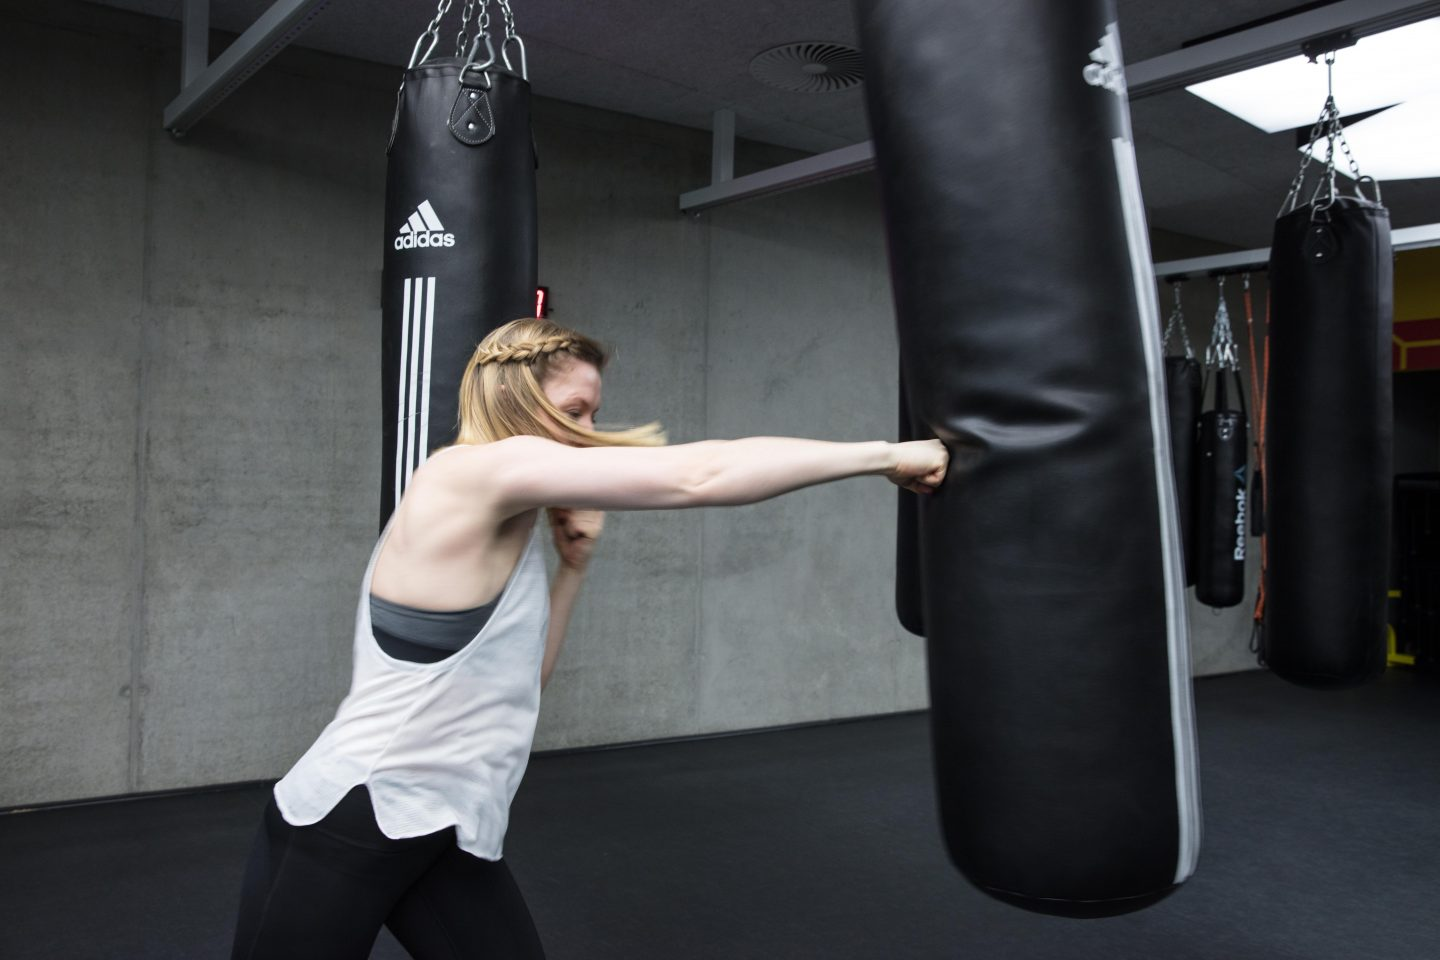 A young woman punches a boxing bag in a gritty gym. martial arts, power, strength, fitness, gym, workout